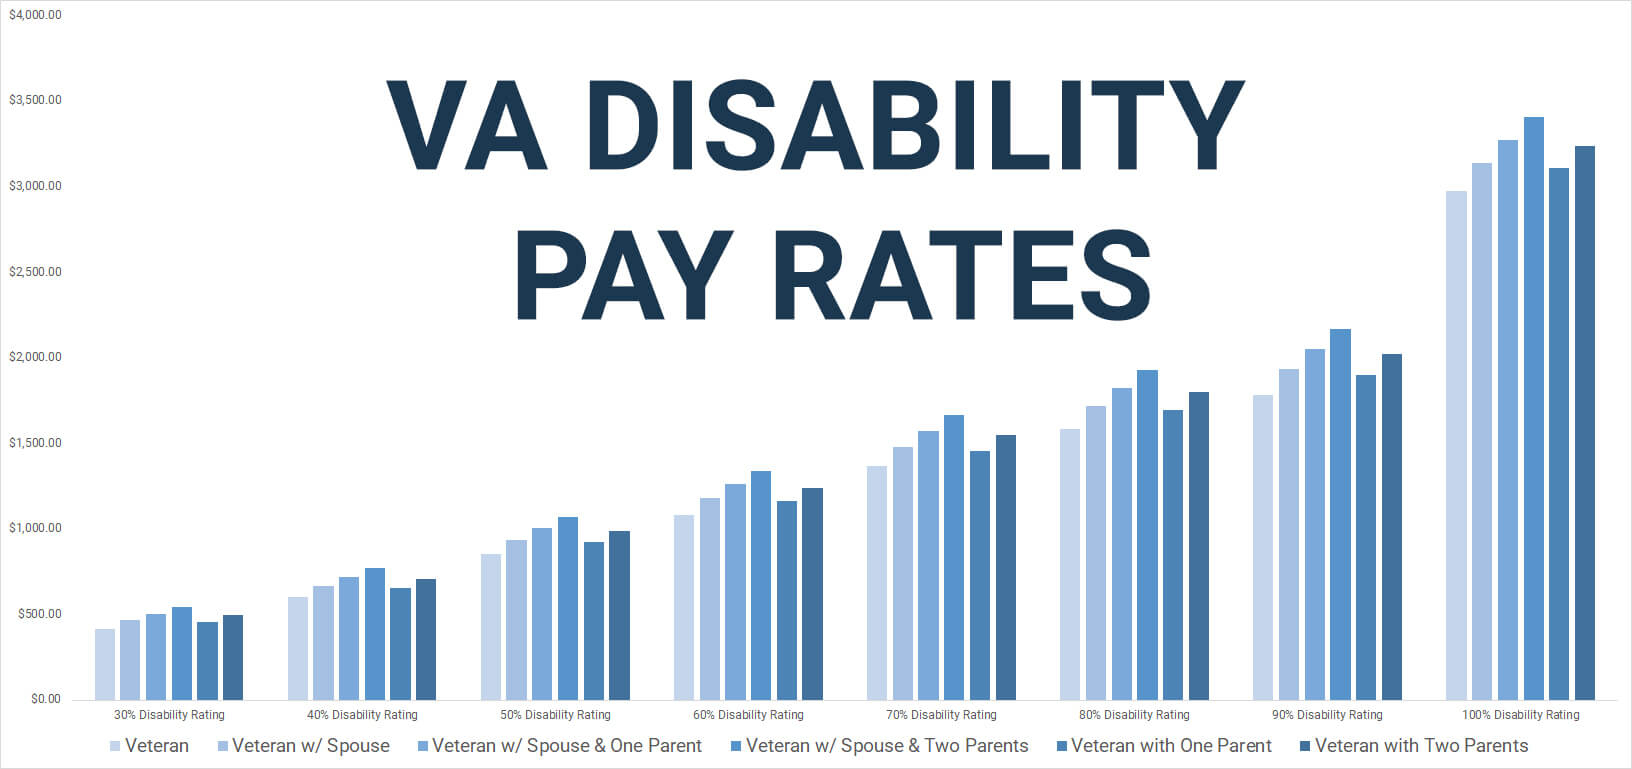 Va Disability Rates - 2020's Updated Pay Chart